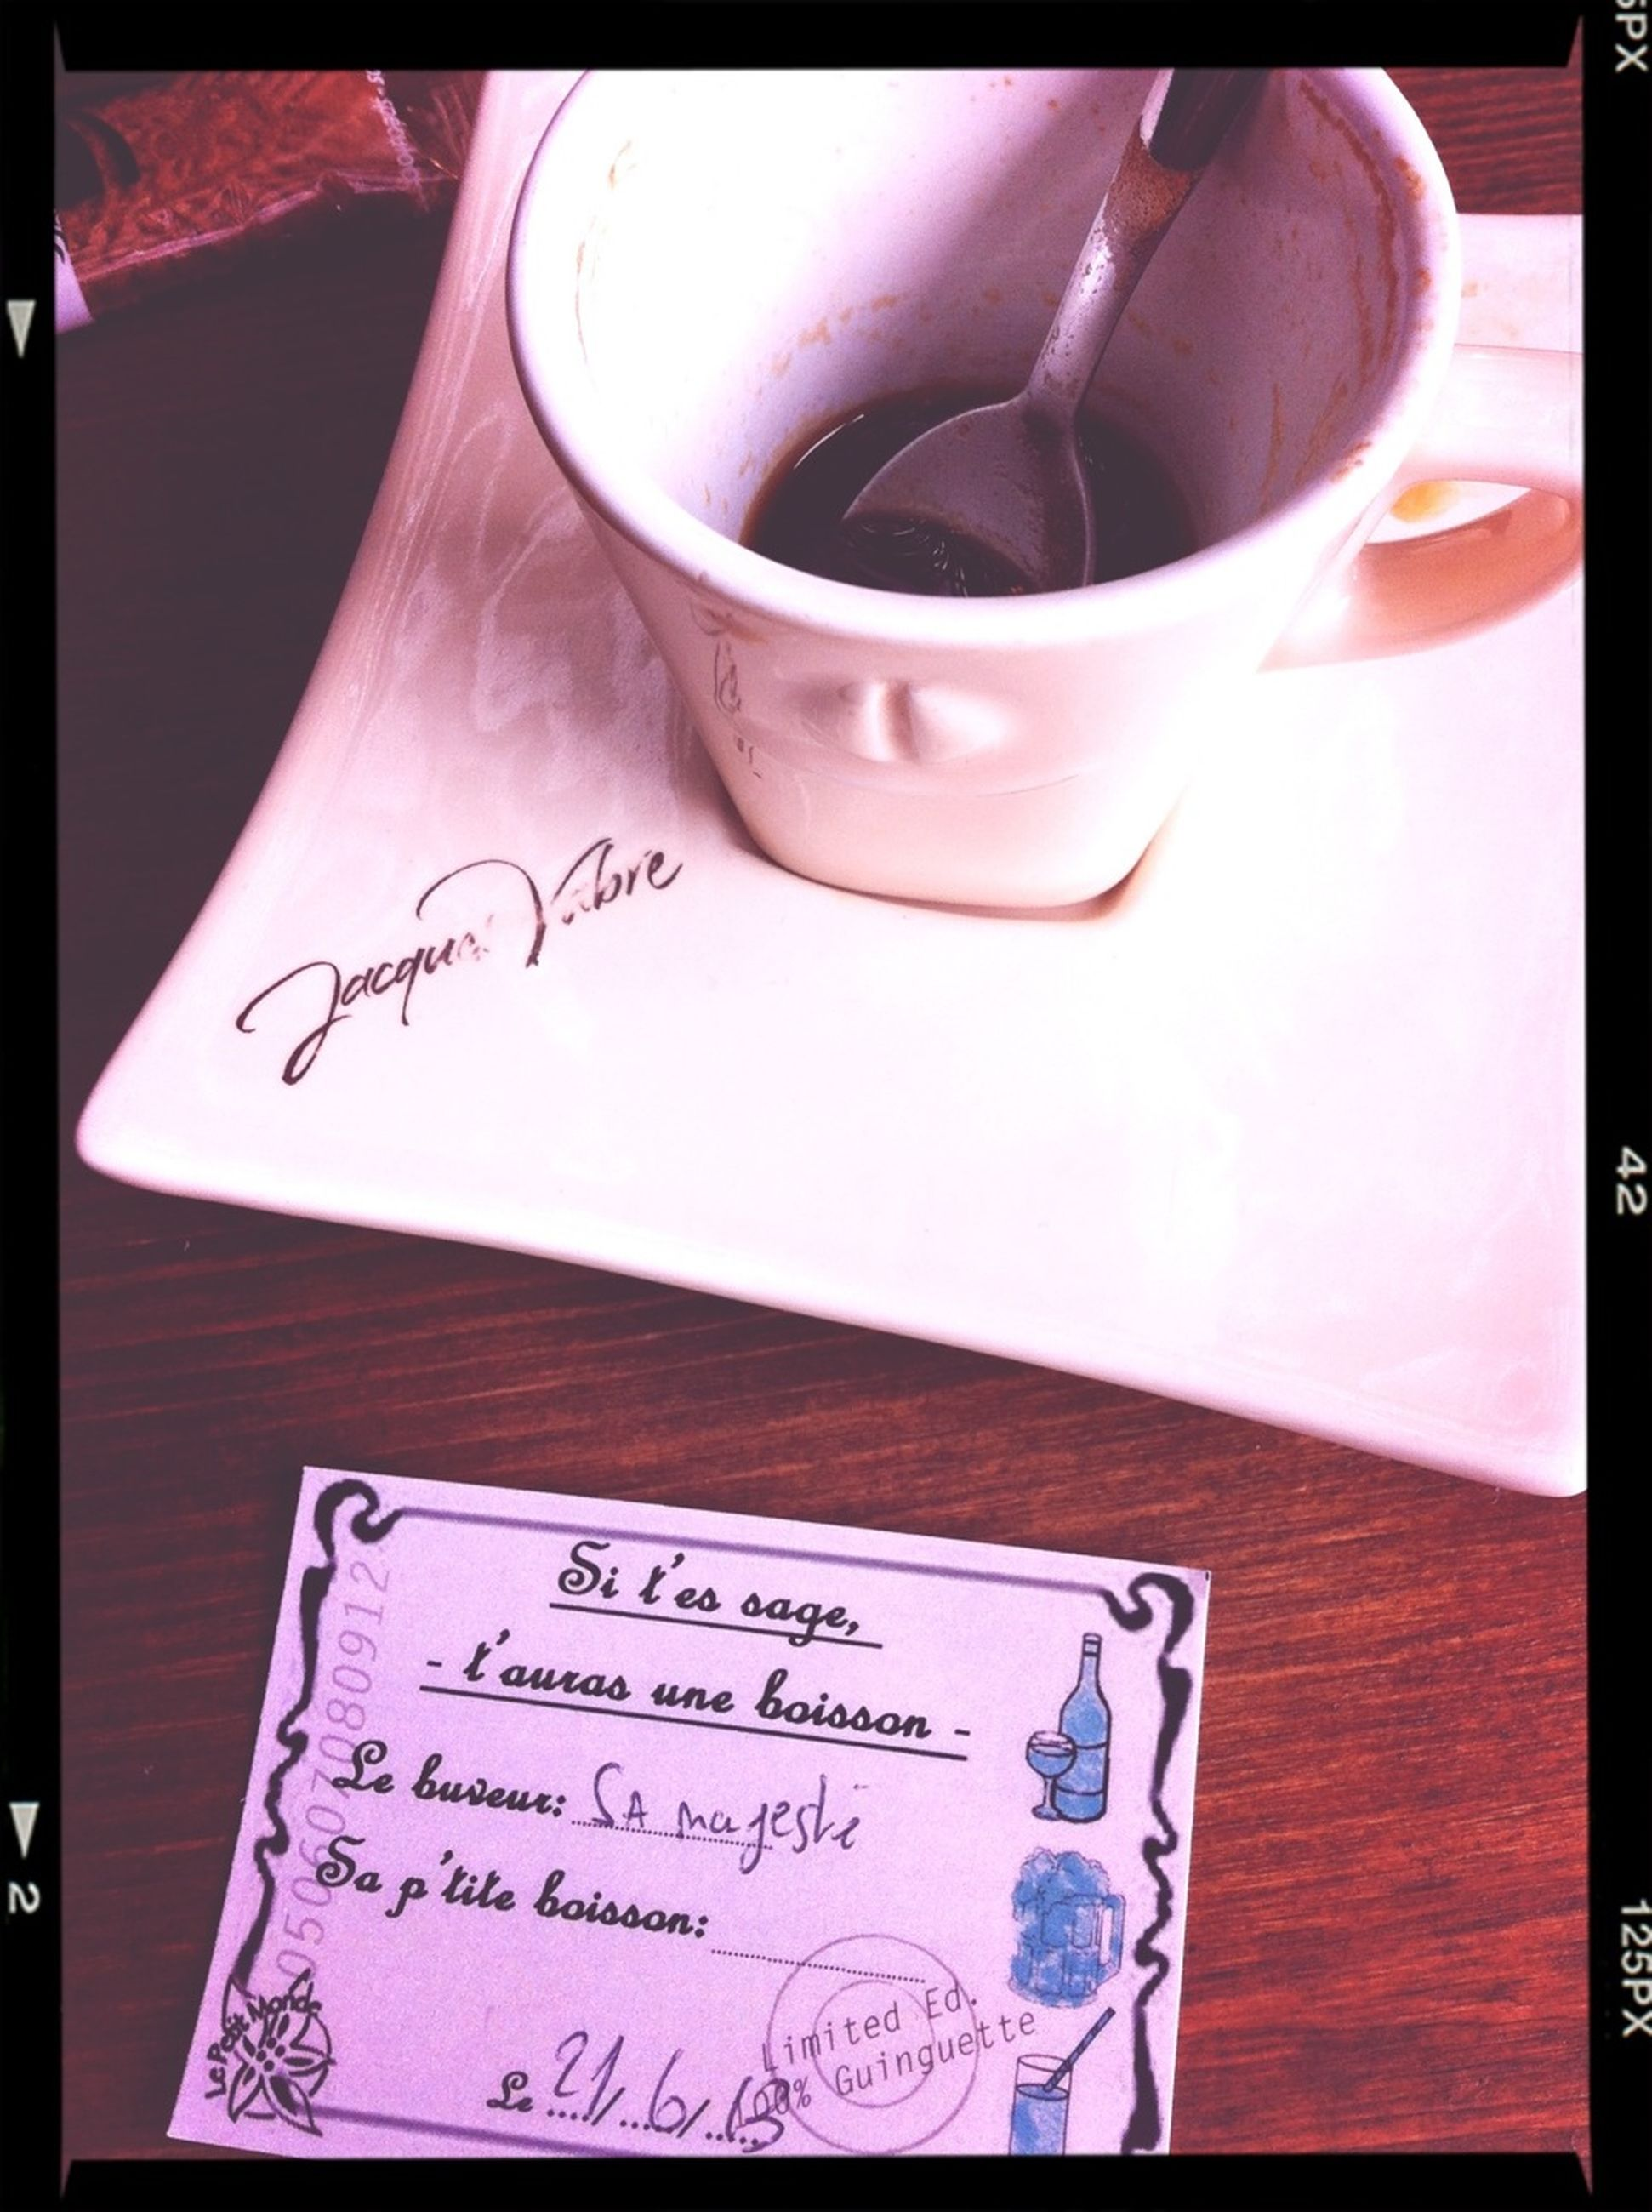 indoors, text, table, western script, transfer print, communication, food and drink, still life, close-up, auto post production filter, paper, freshness, book, drink, high angle view, refreshment, coffee cup, no people, handwriting, pink color